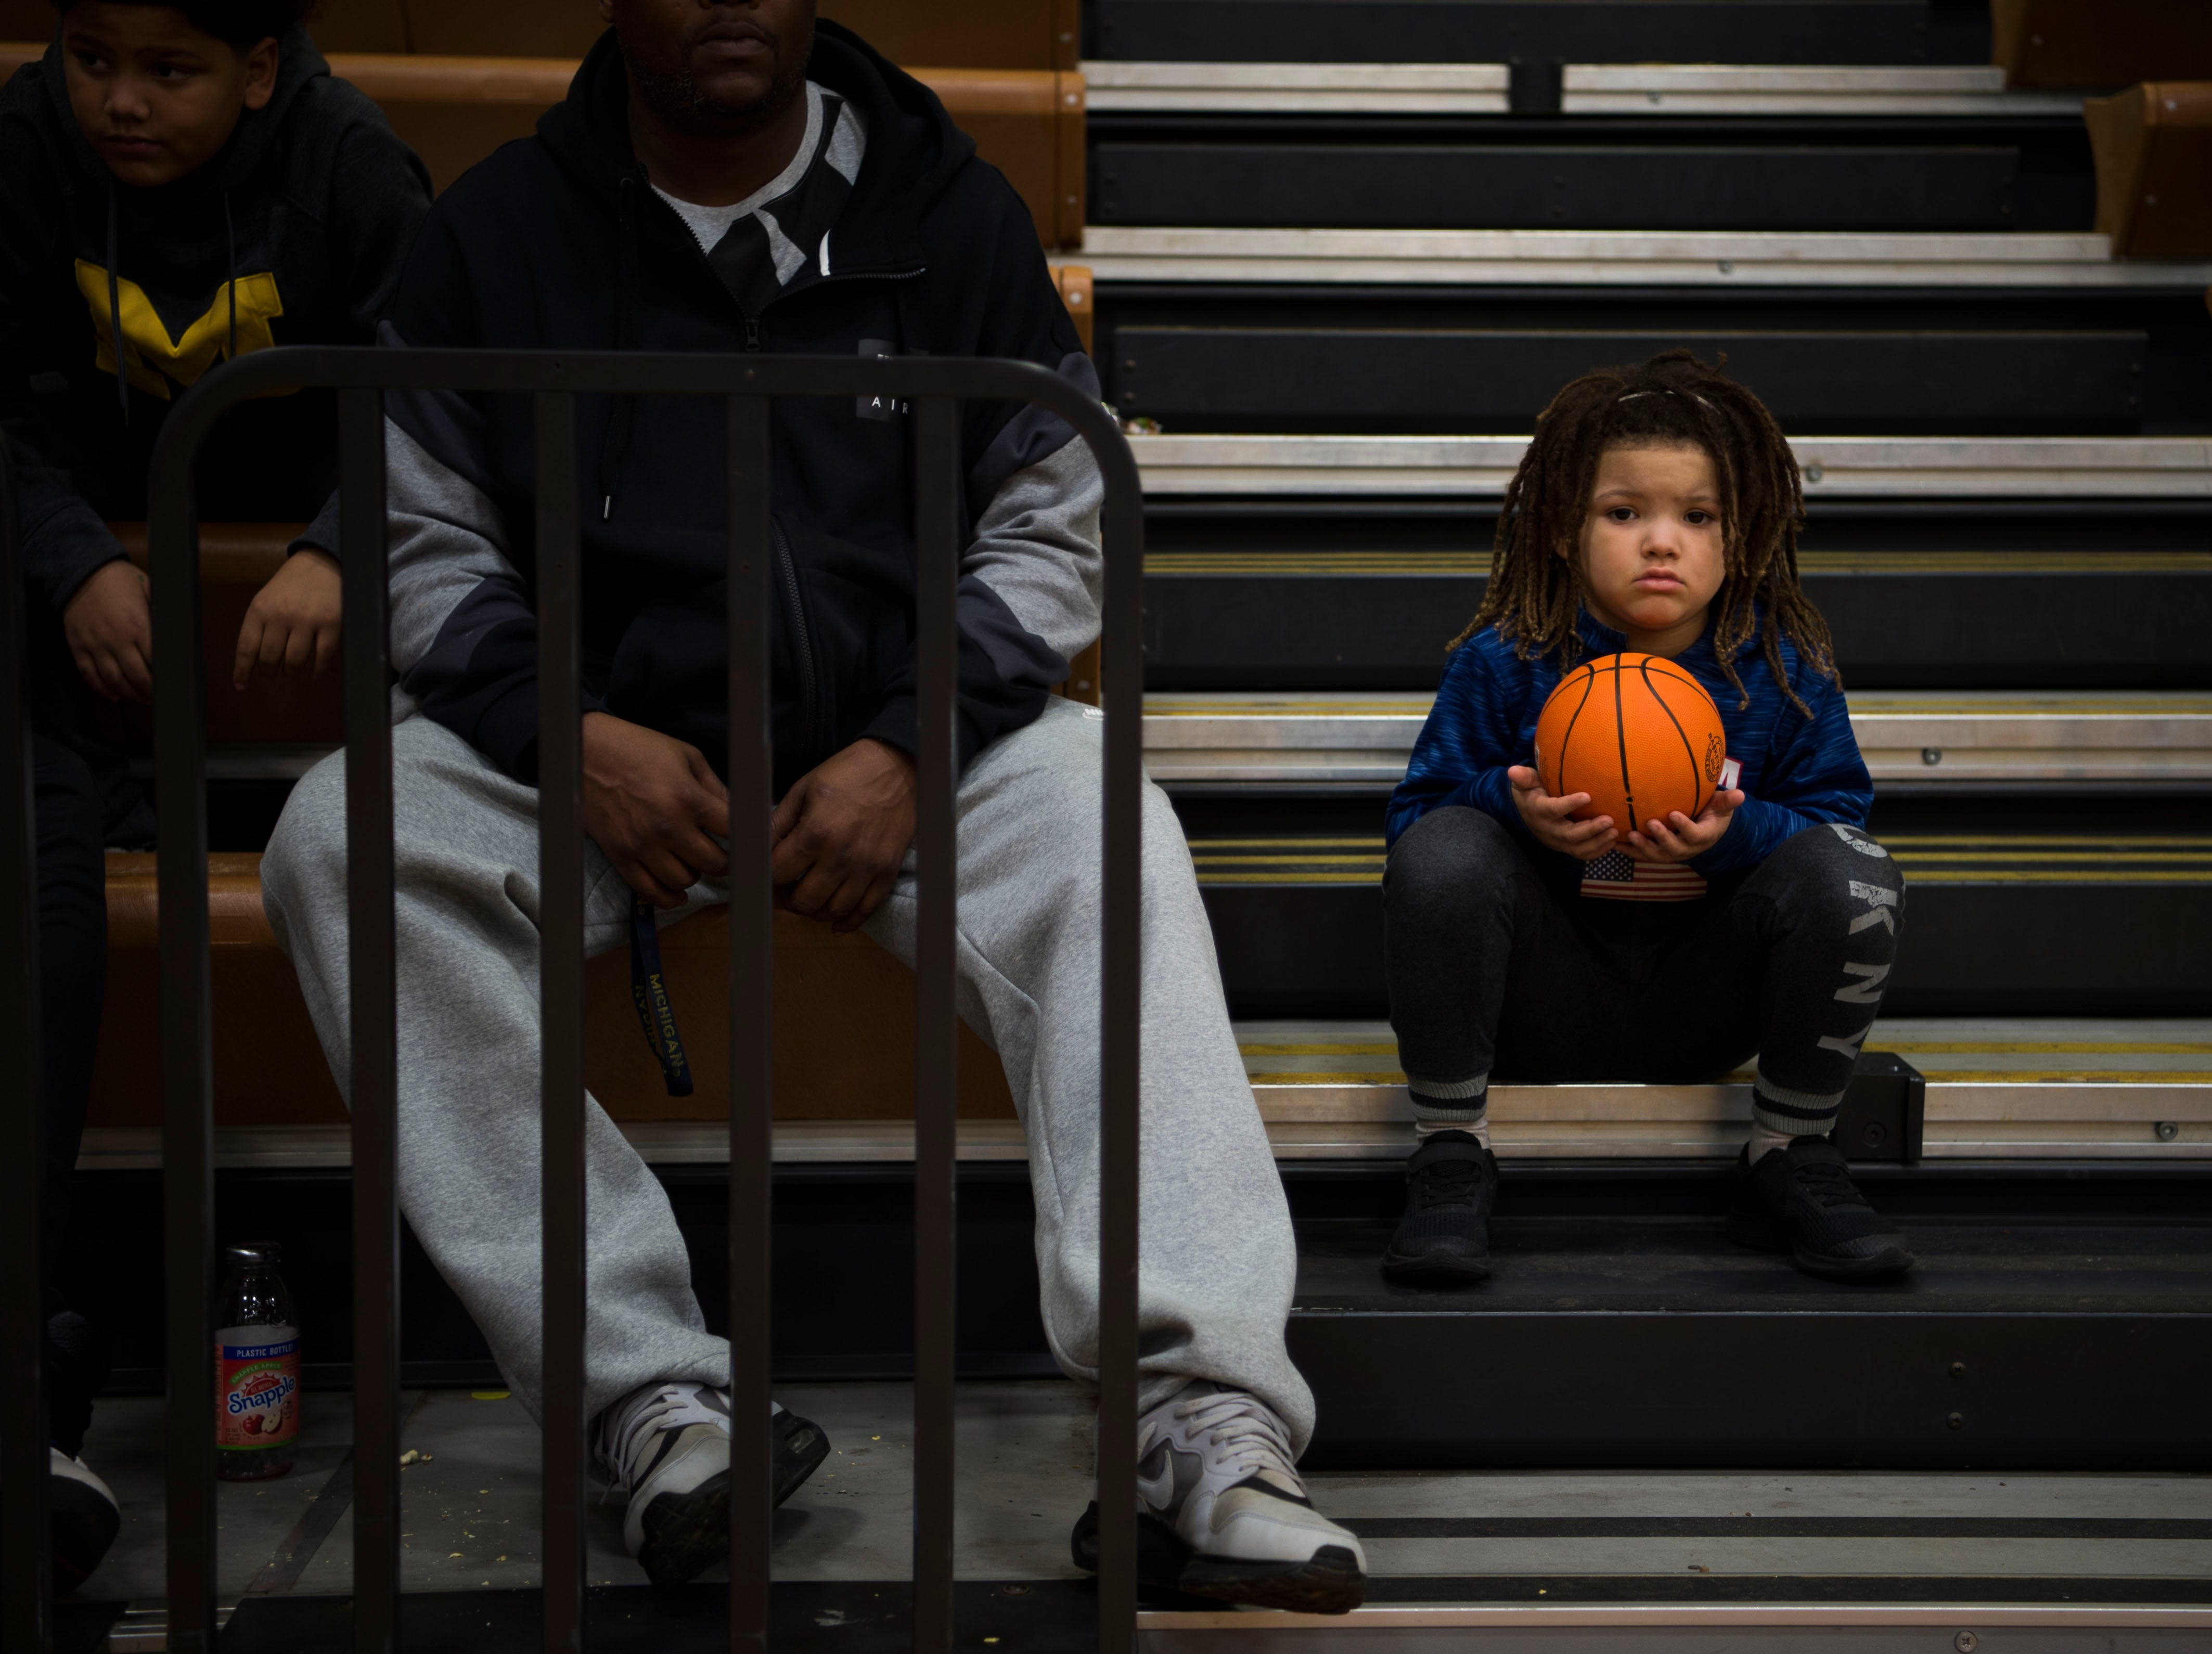 Young Maryville fan Trey Dorsey, 5, watches the game from the bleachers during a high school basketball game between Maryville and Farragut at Farragut, Friday, Jan. 11, 2019.